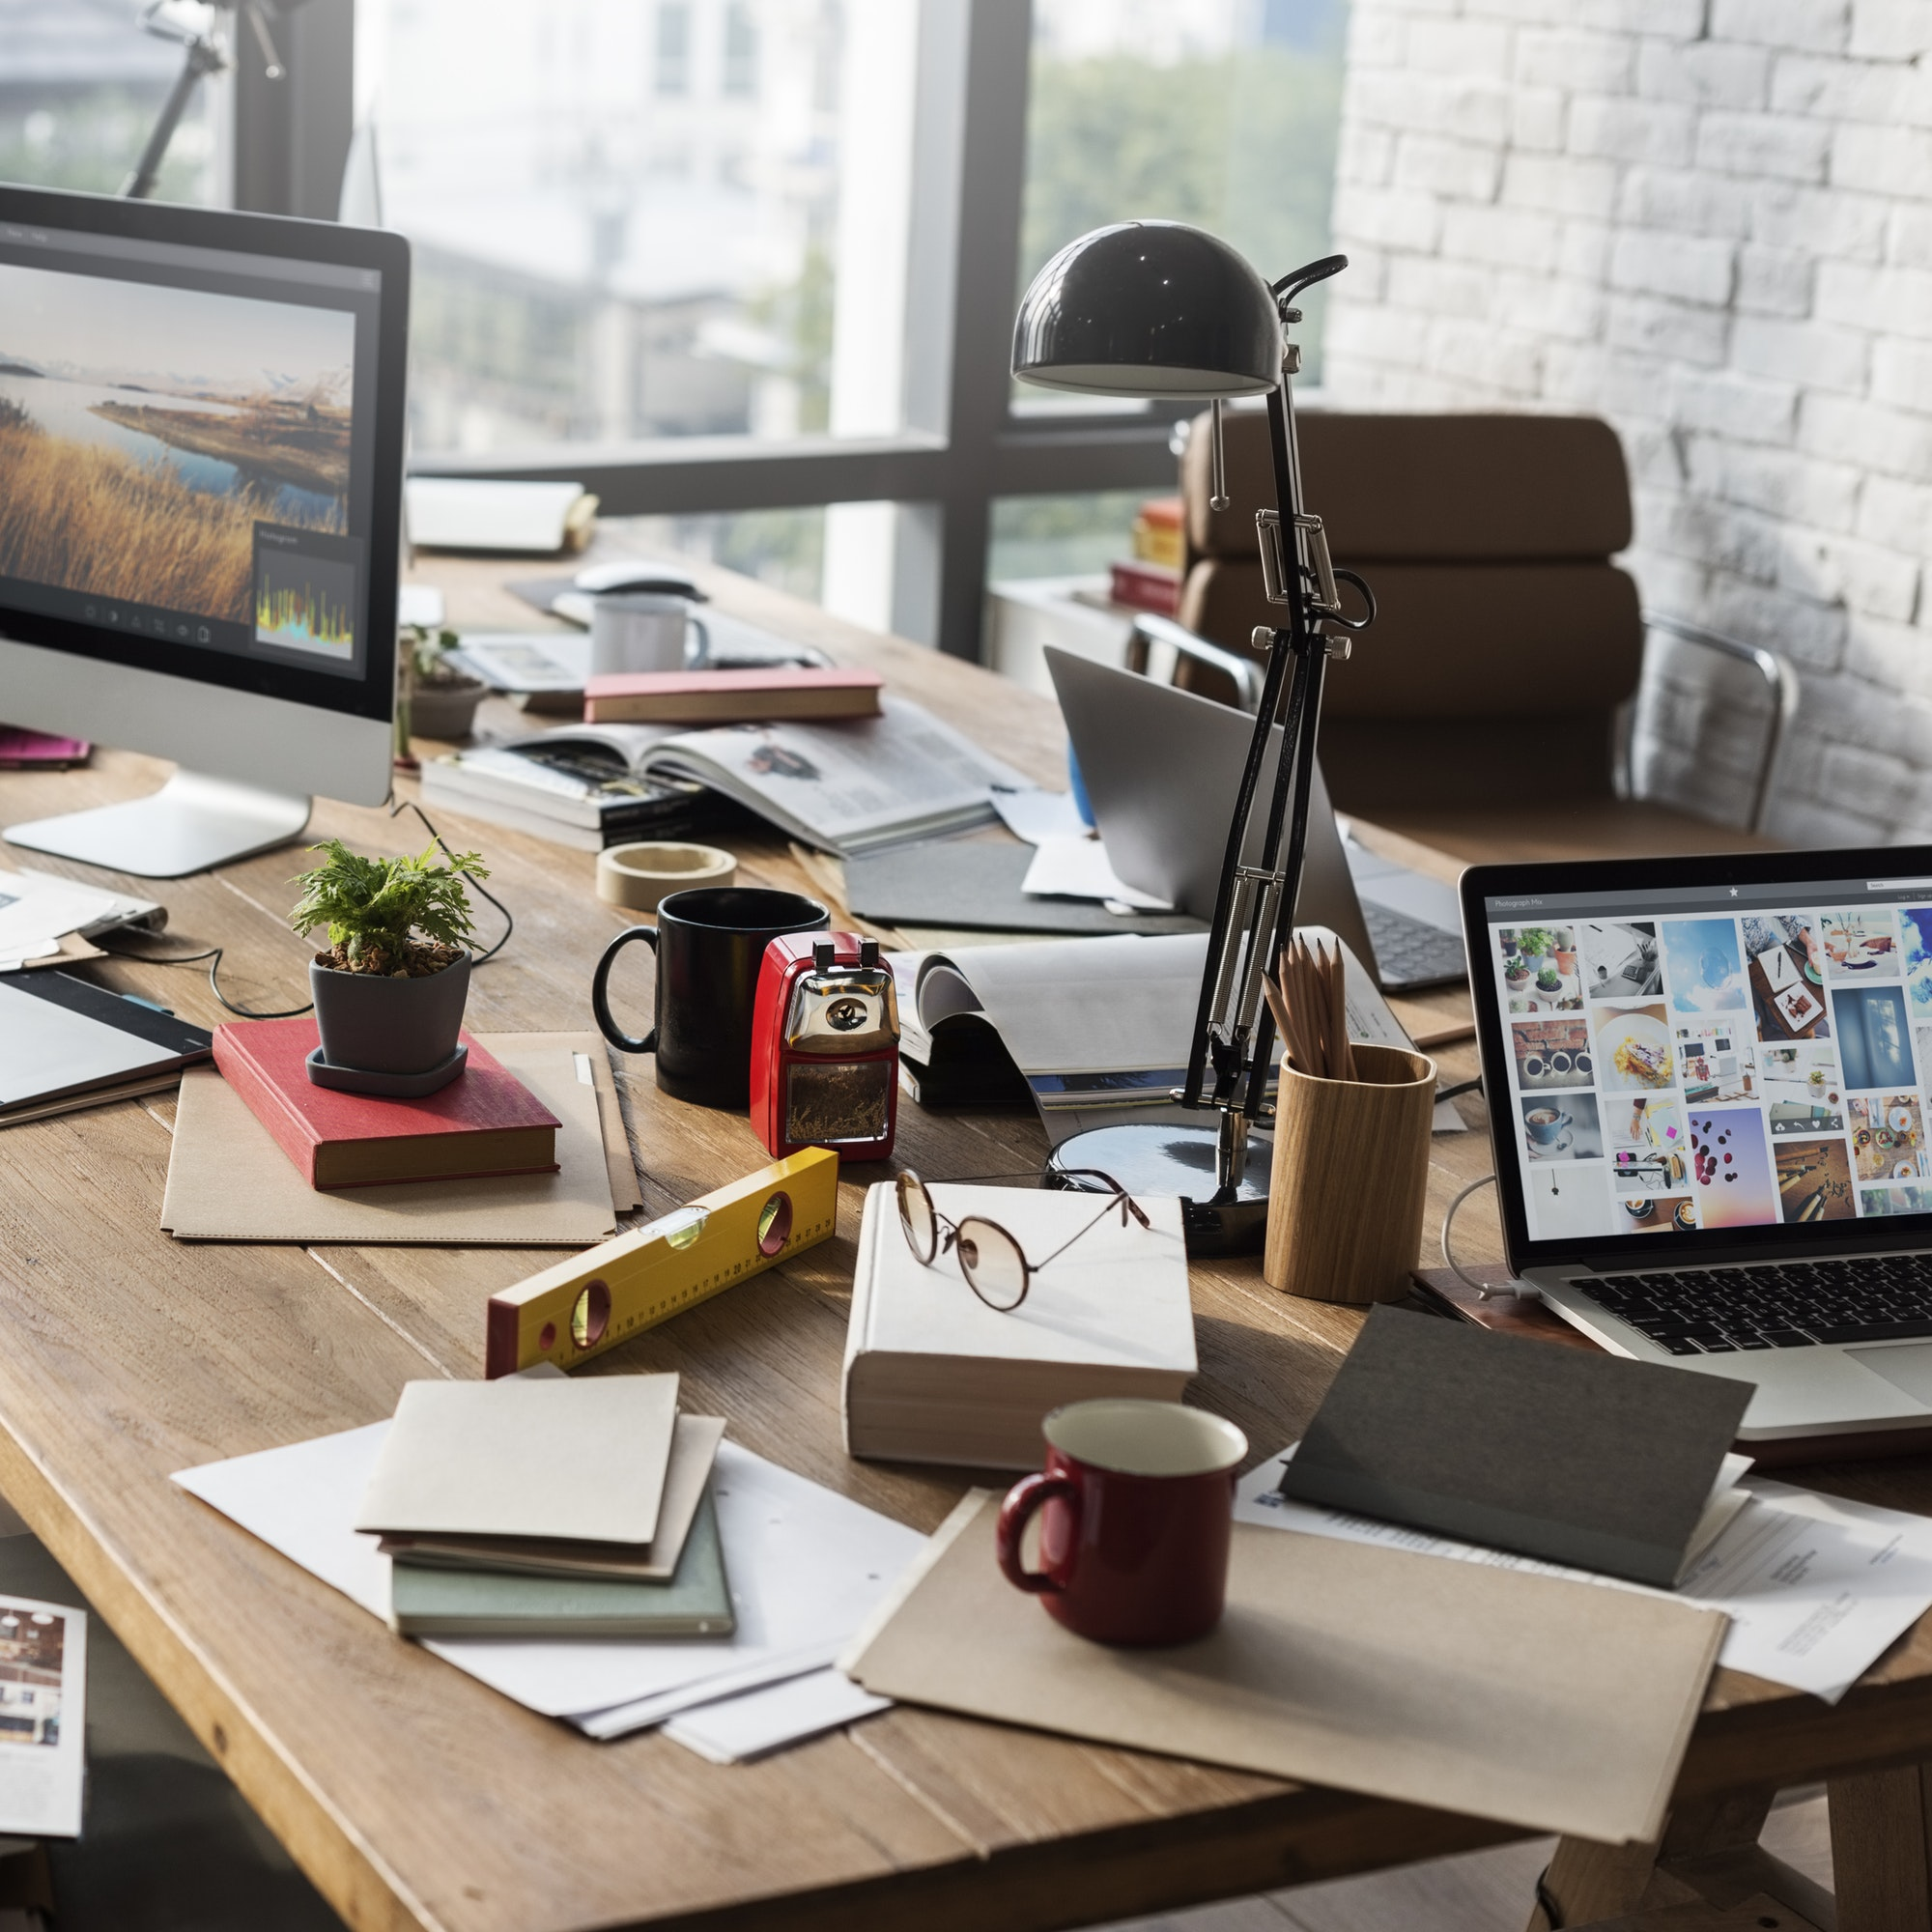 Home Office Appliance Workspace Workplace Concept